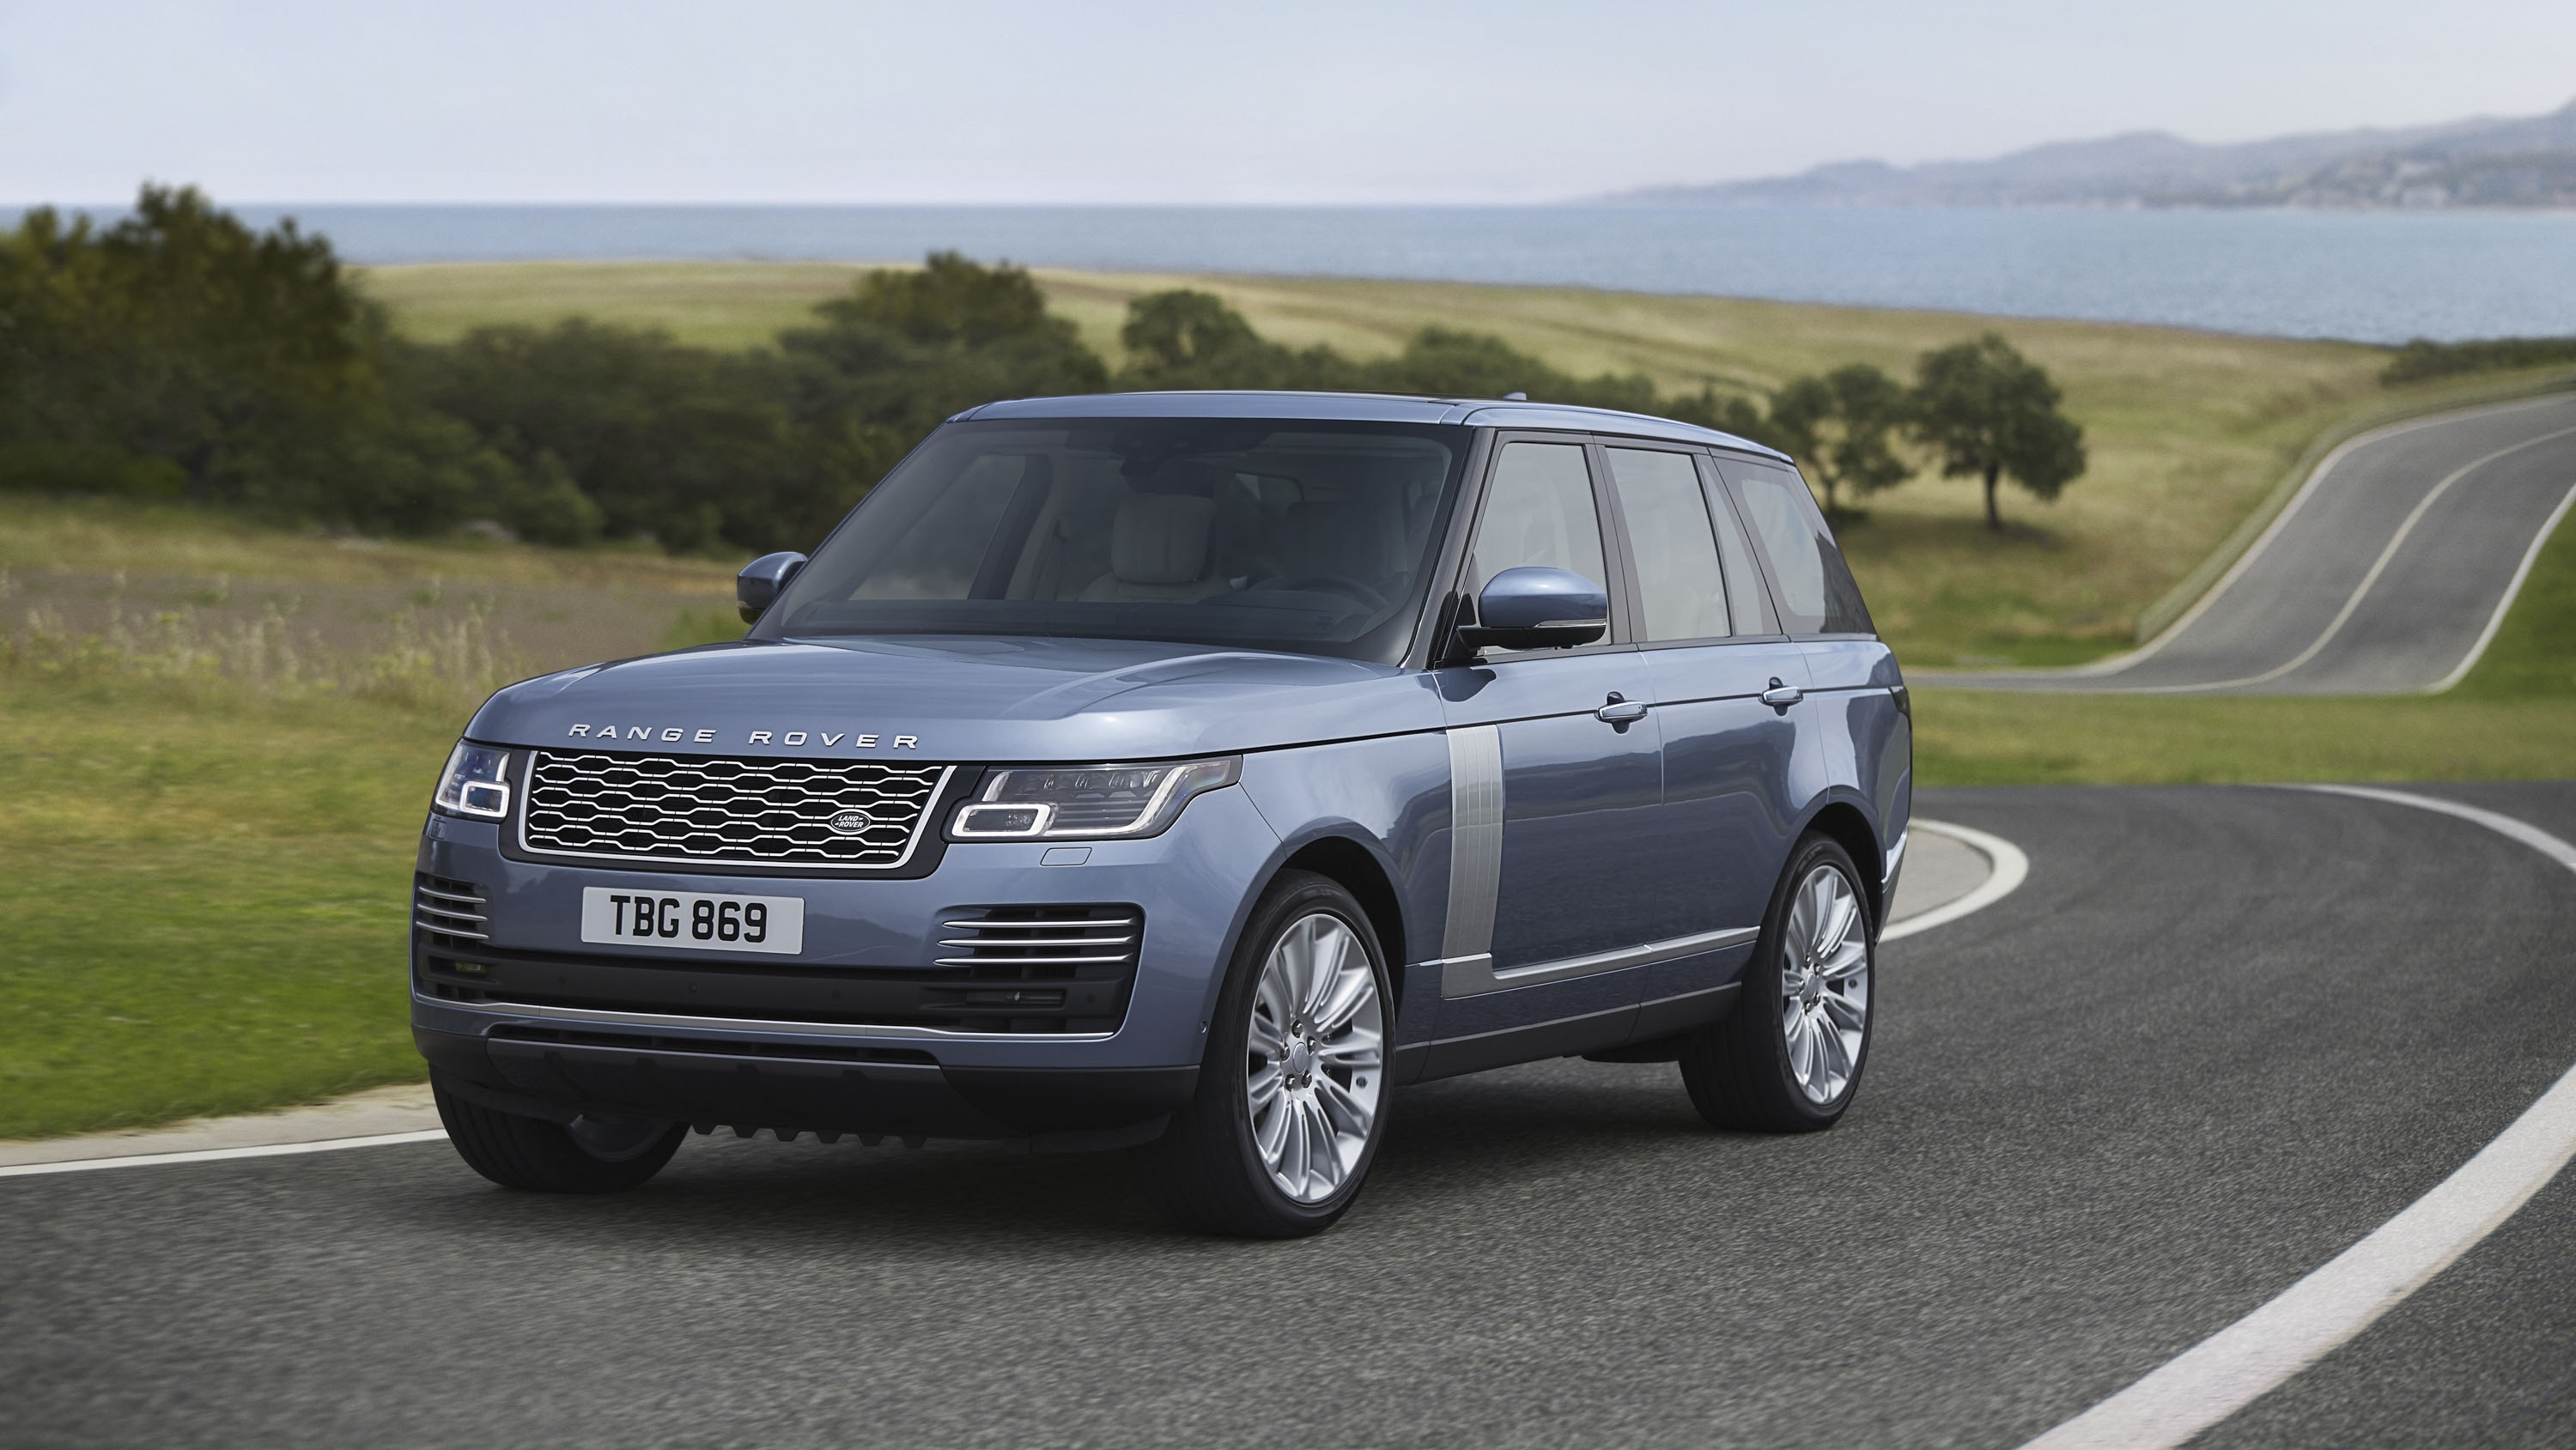 Landrover Range Land Rover Range Rover Reviews Specs Prices Photos And Videos